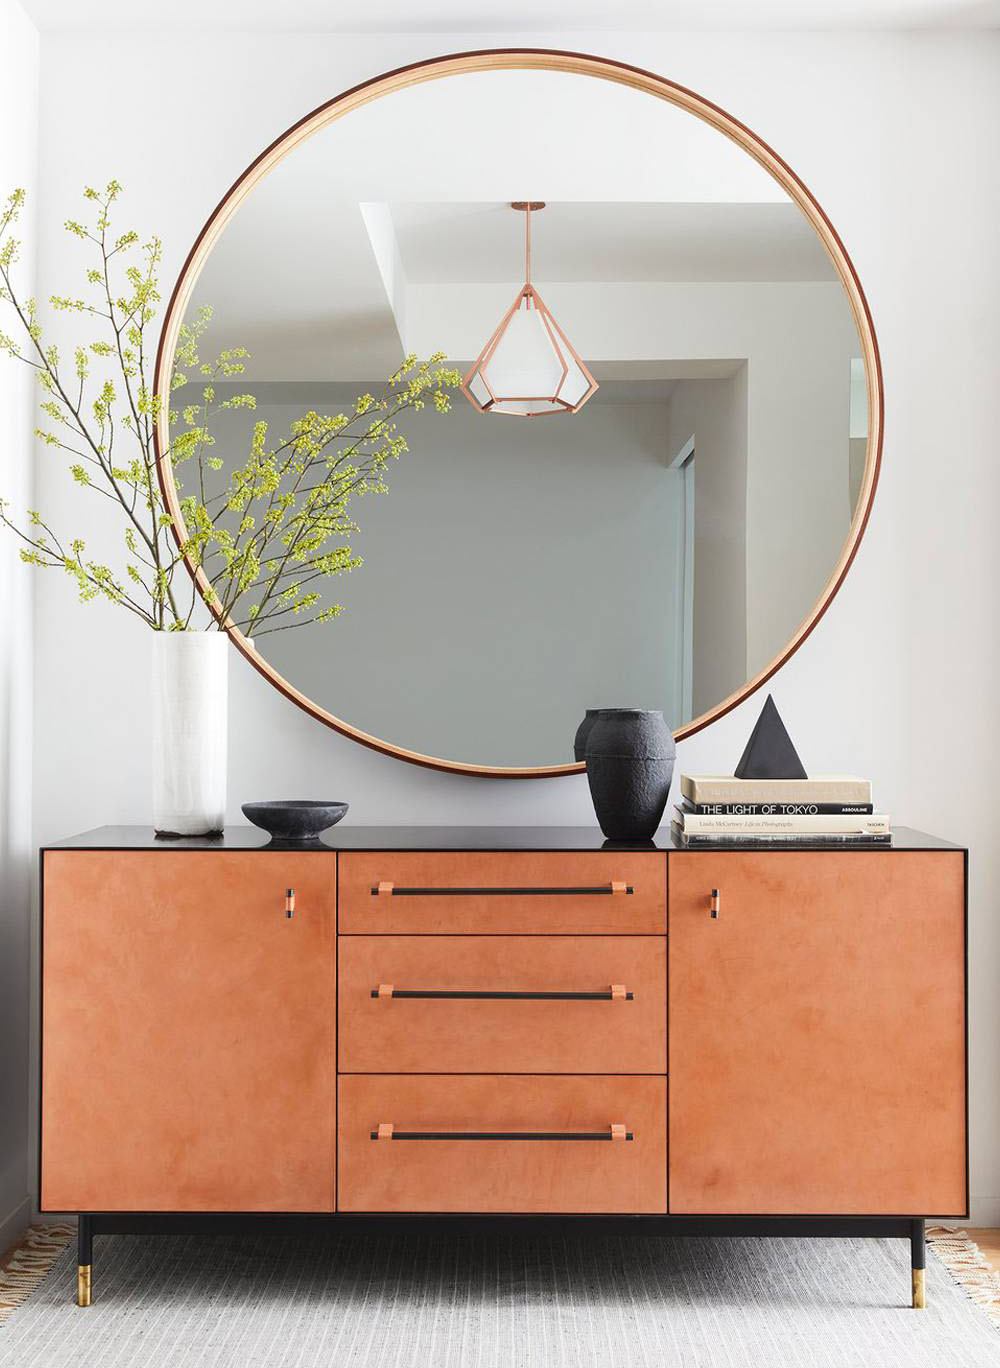 Place a Mirror Hung on The Wall to Complete Your Entryway Table